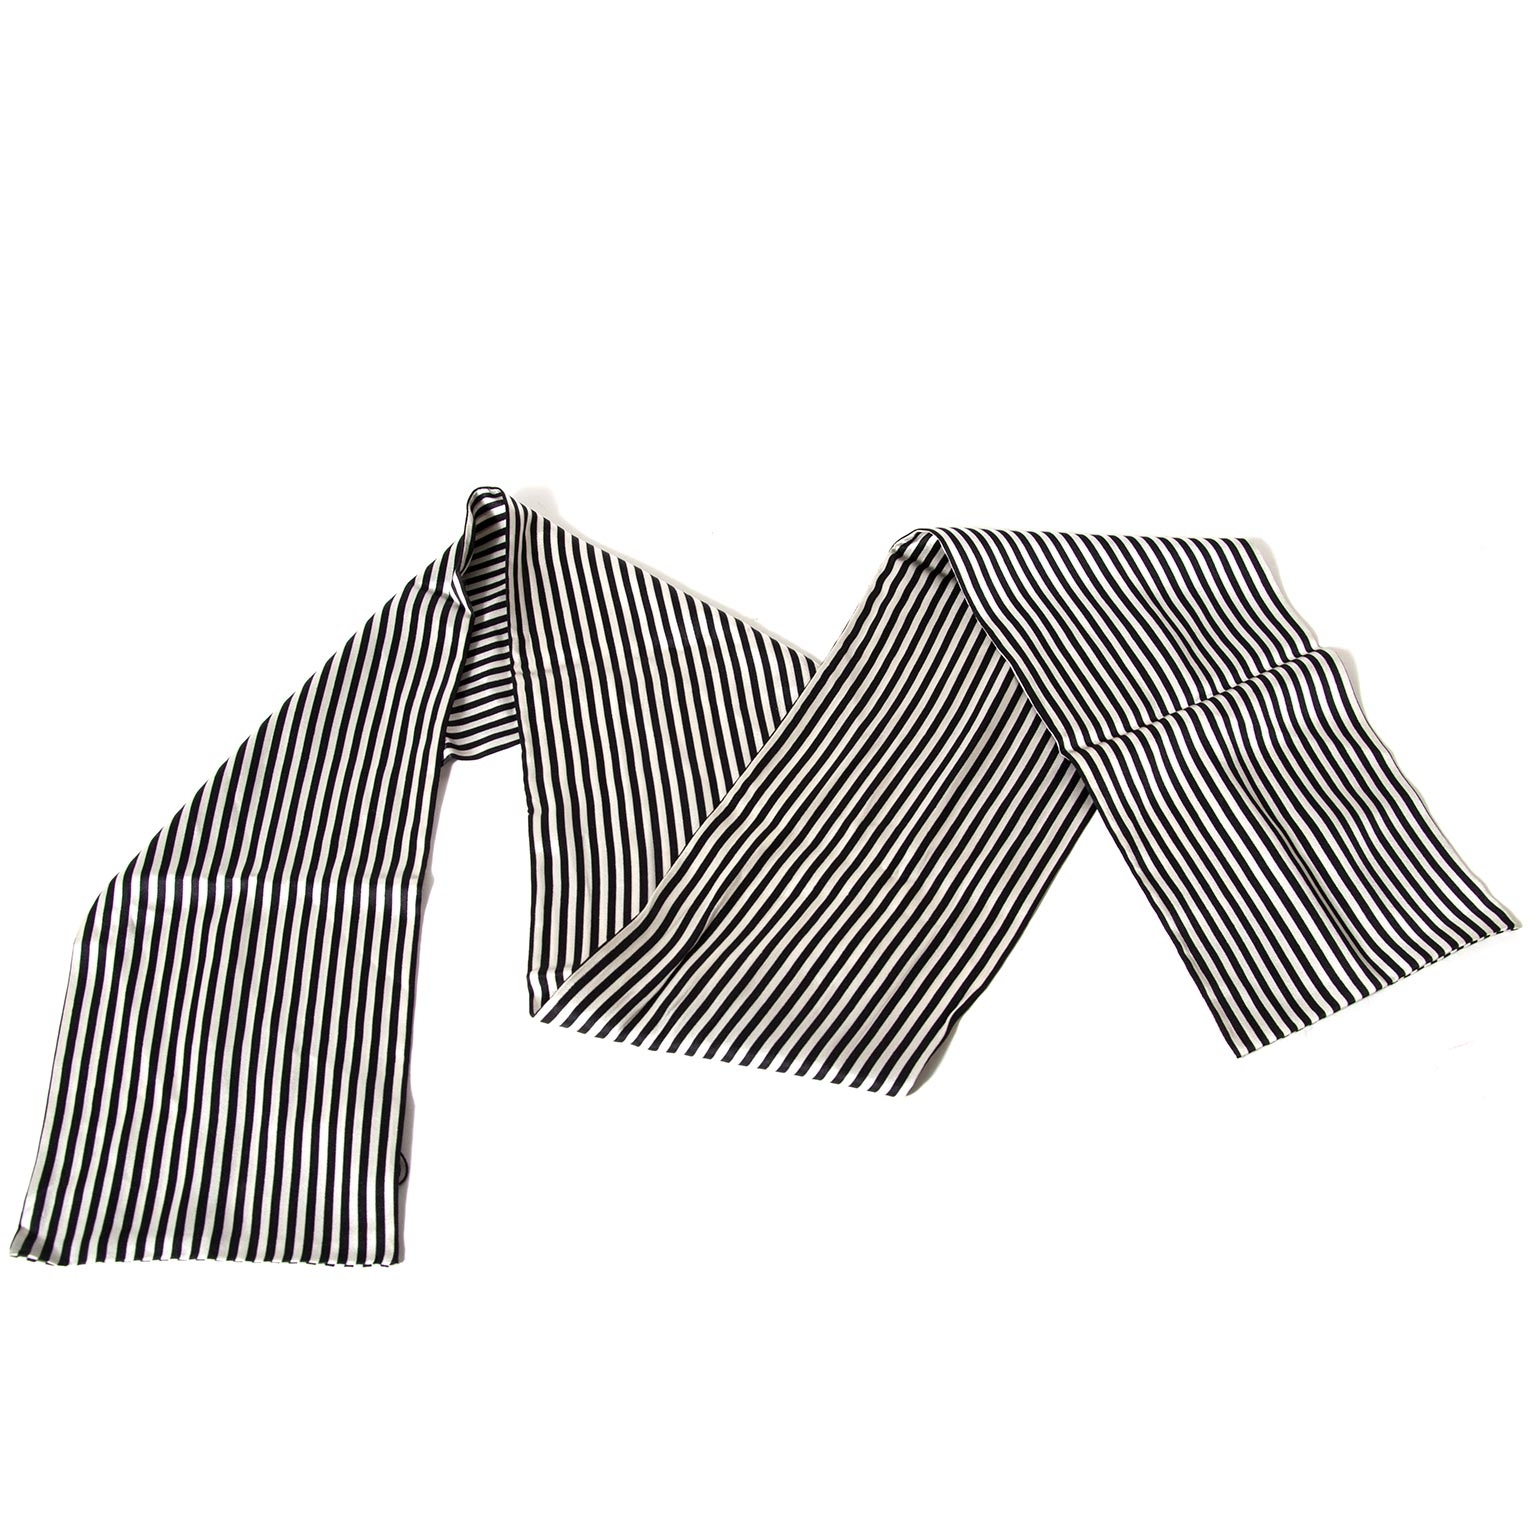 christian dior black and white stripe scarf now for sale at labellov vintage fashion webshop belgium